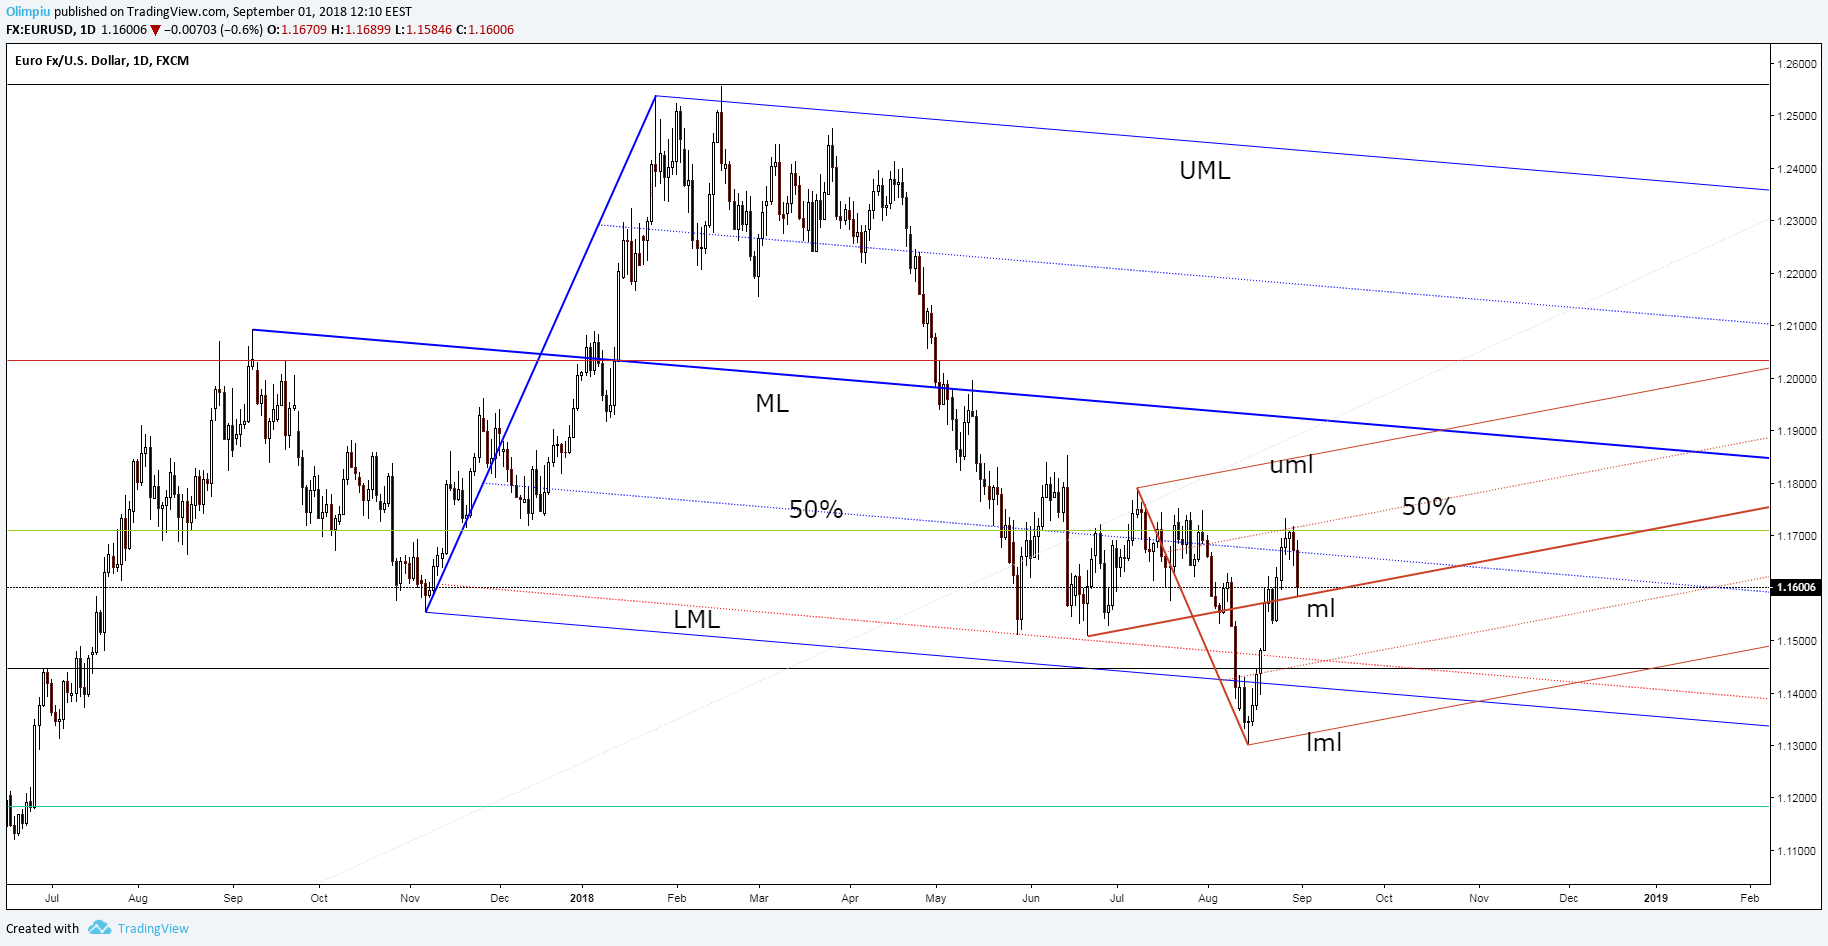 Forex Trading Eur Usd The First Exhaustion Signs September 01